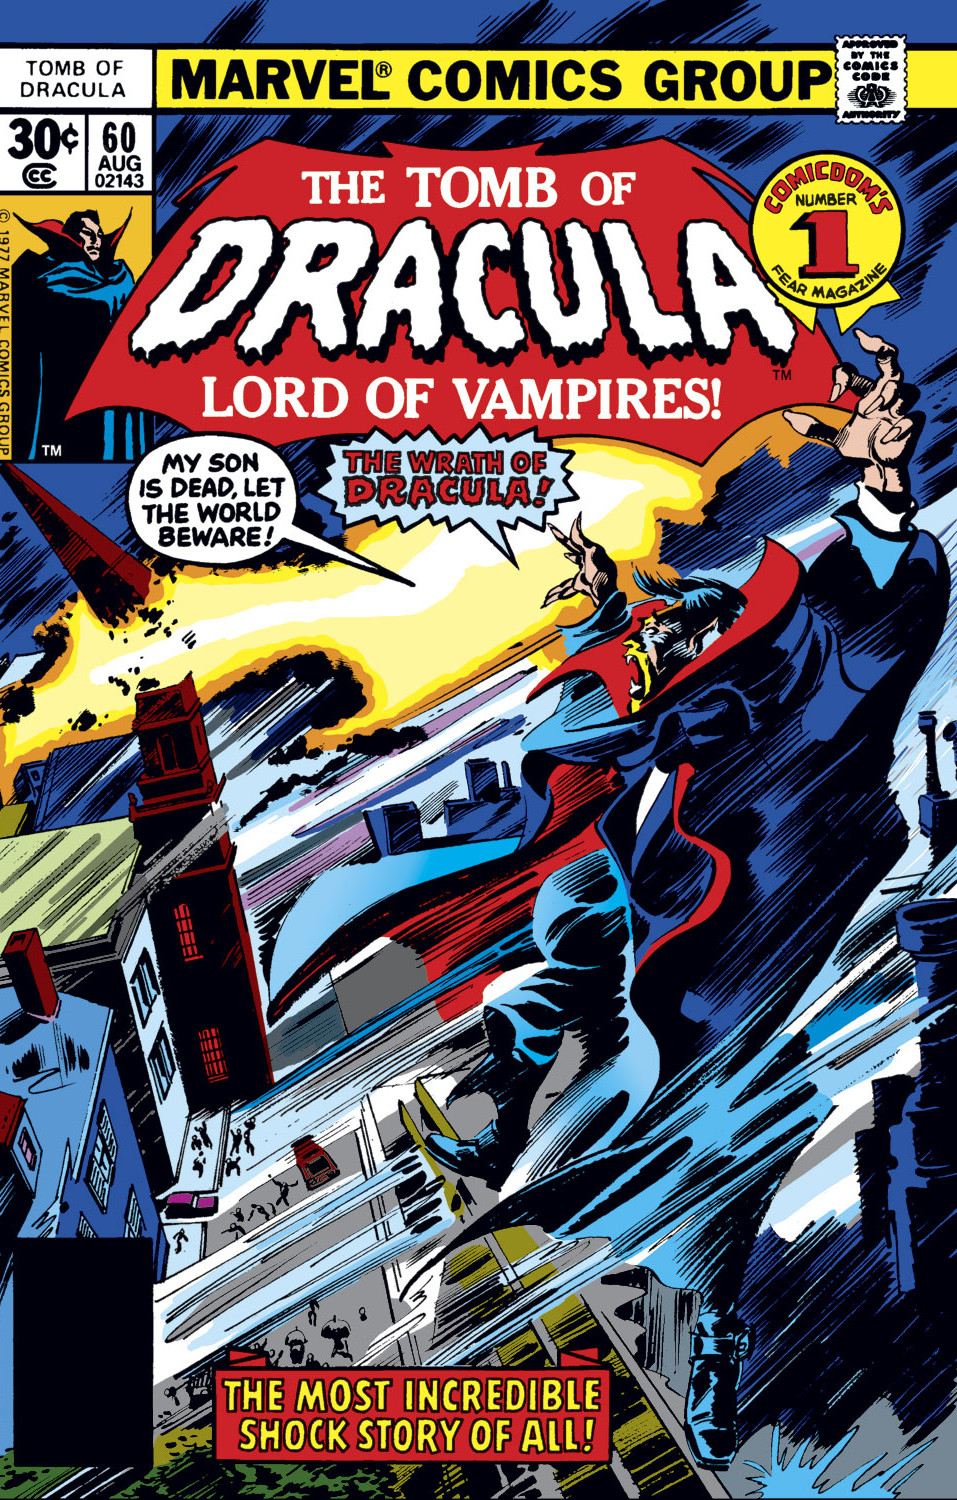 Tomb of Dracula Vol 1 60